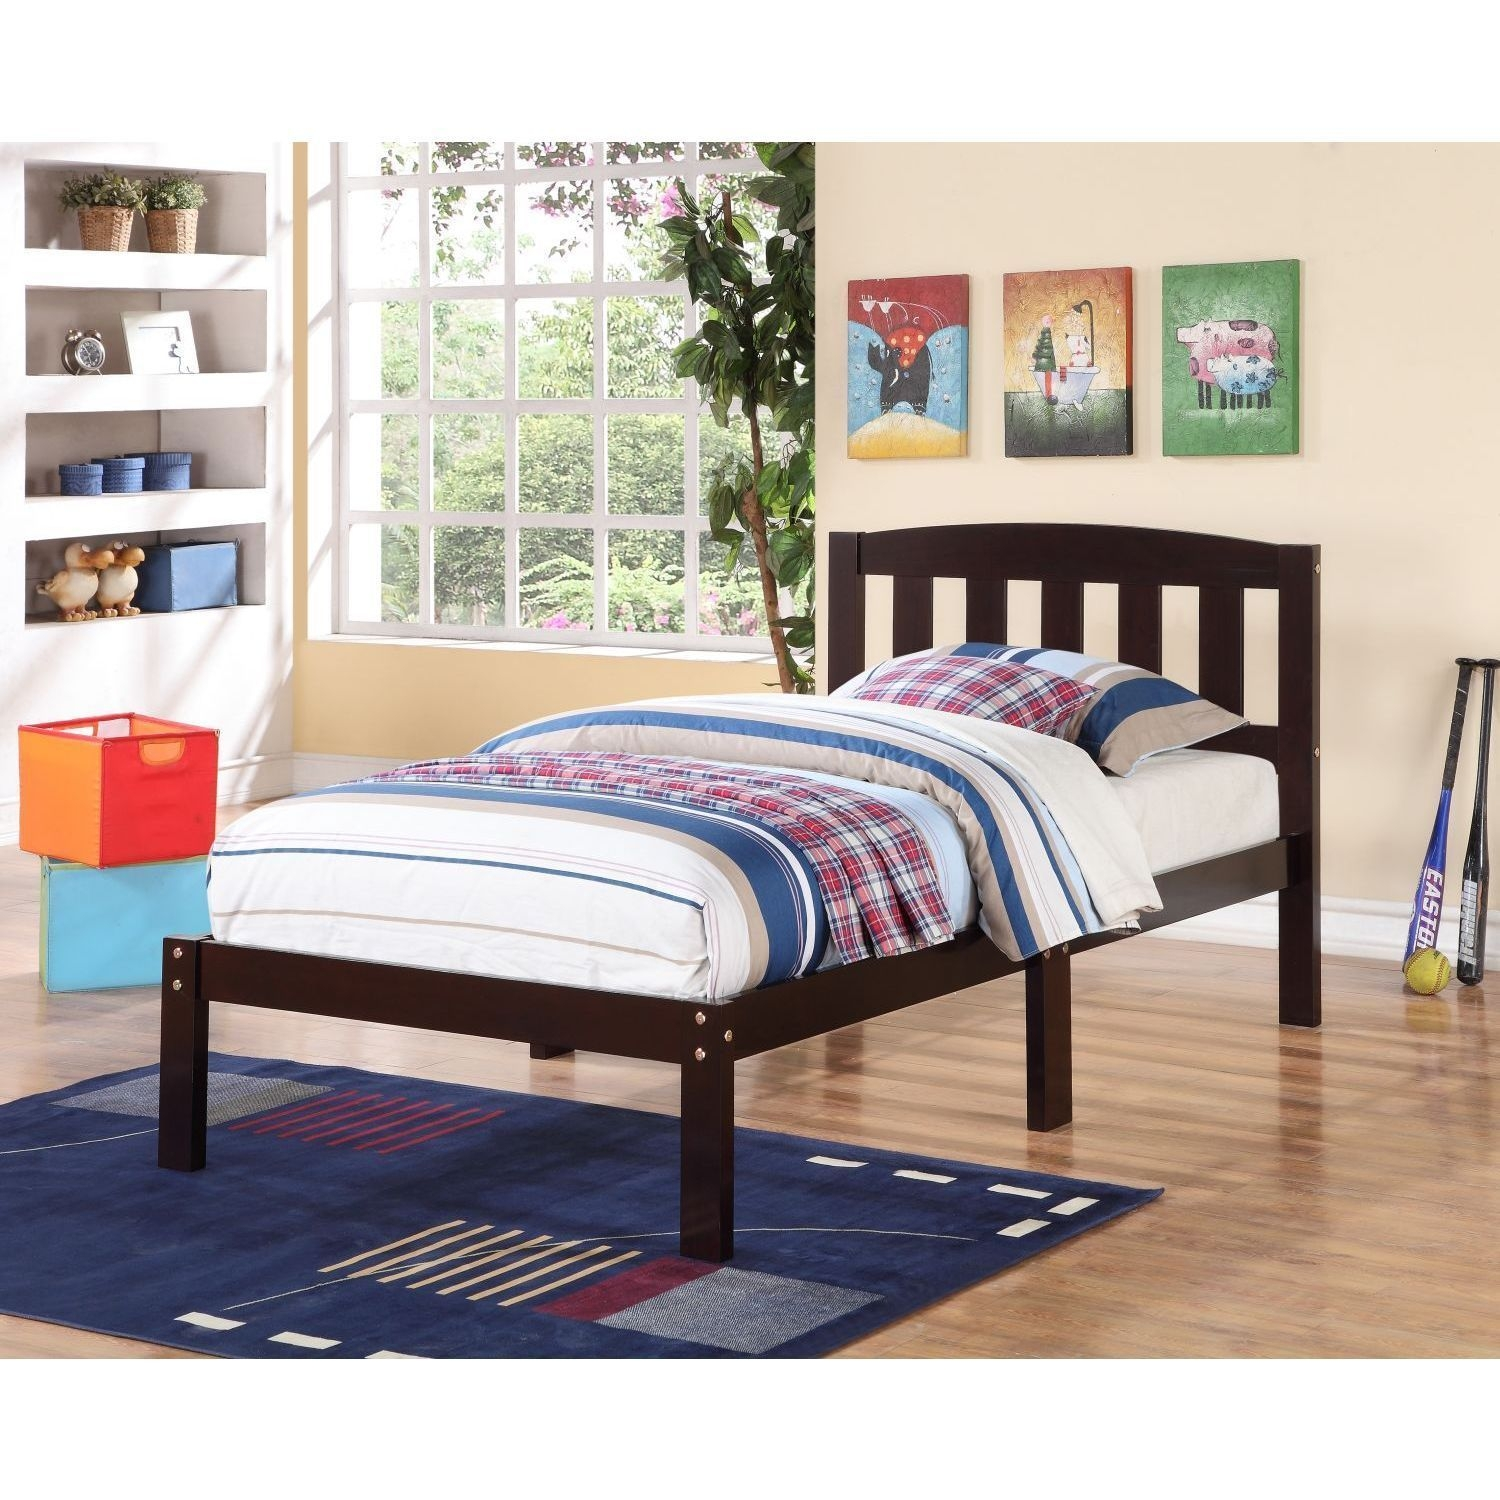 Online Shopping  Bedding Furniture Electronics Jewelry Clothing  More  Home Furnishings